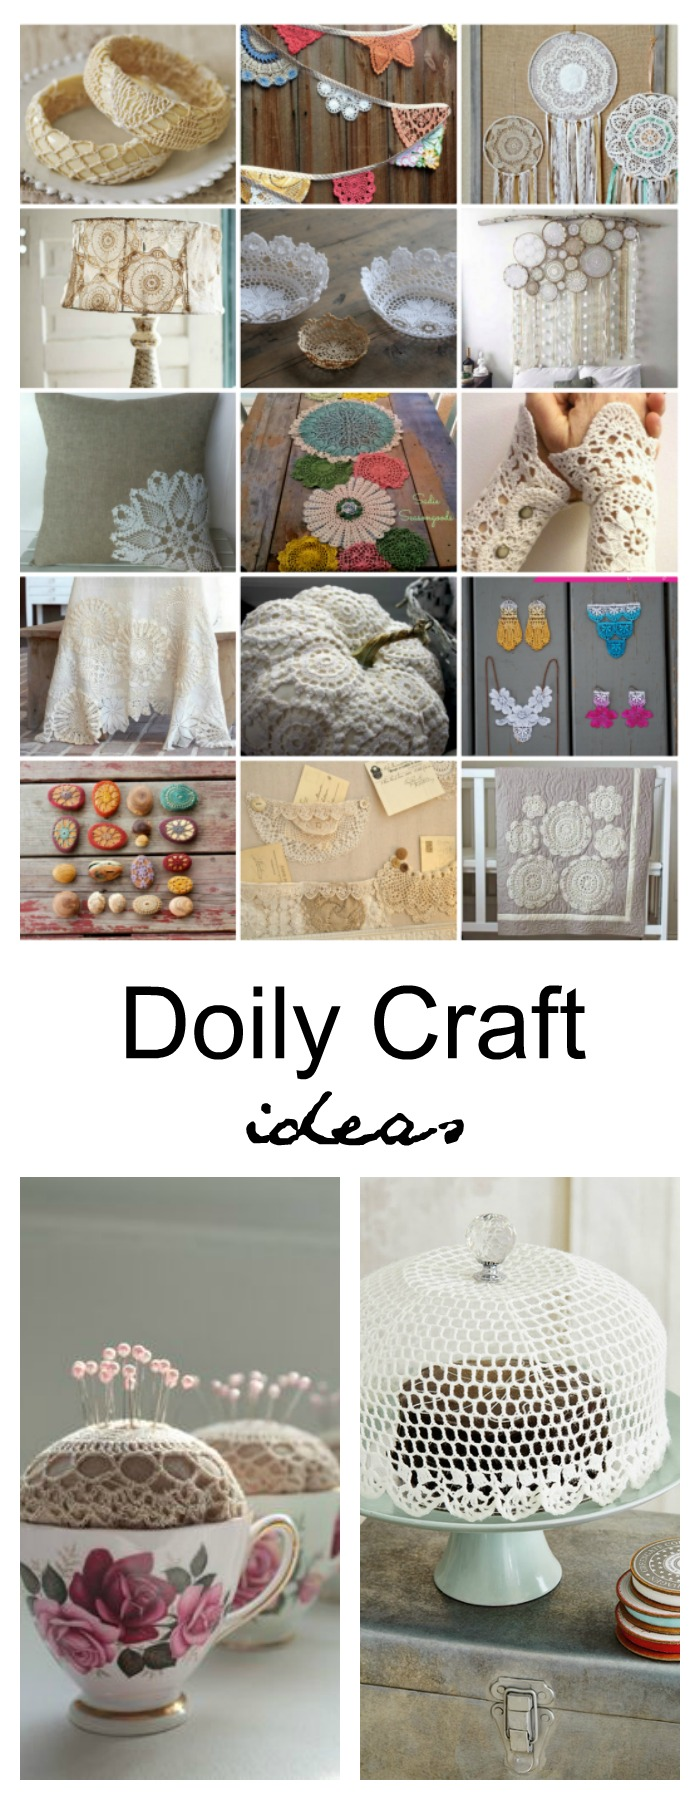 DIY-Doily-Craft-Ideas-Pin